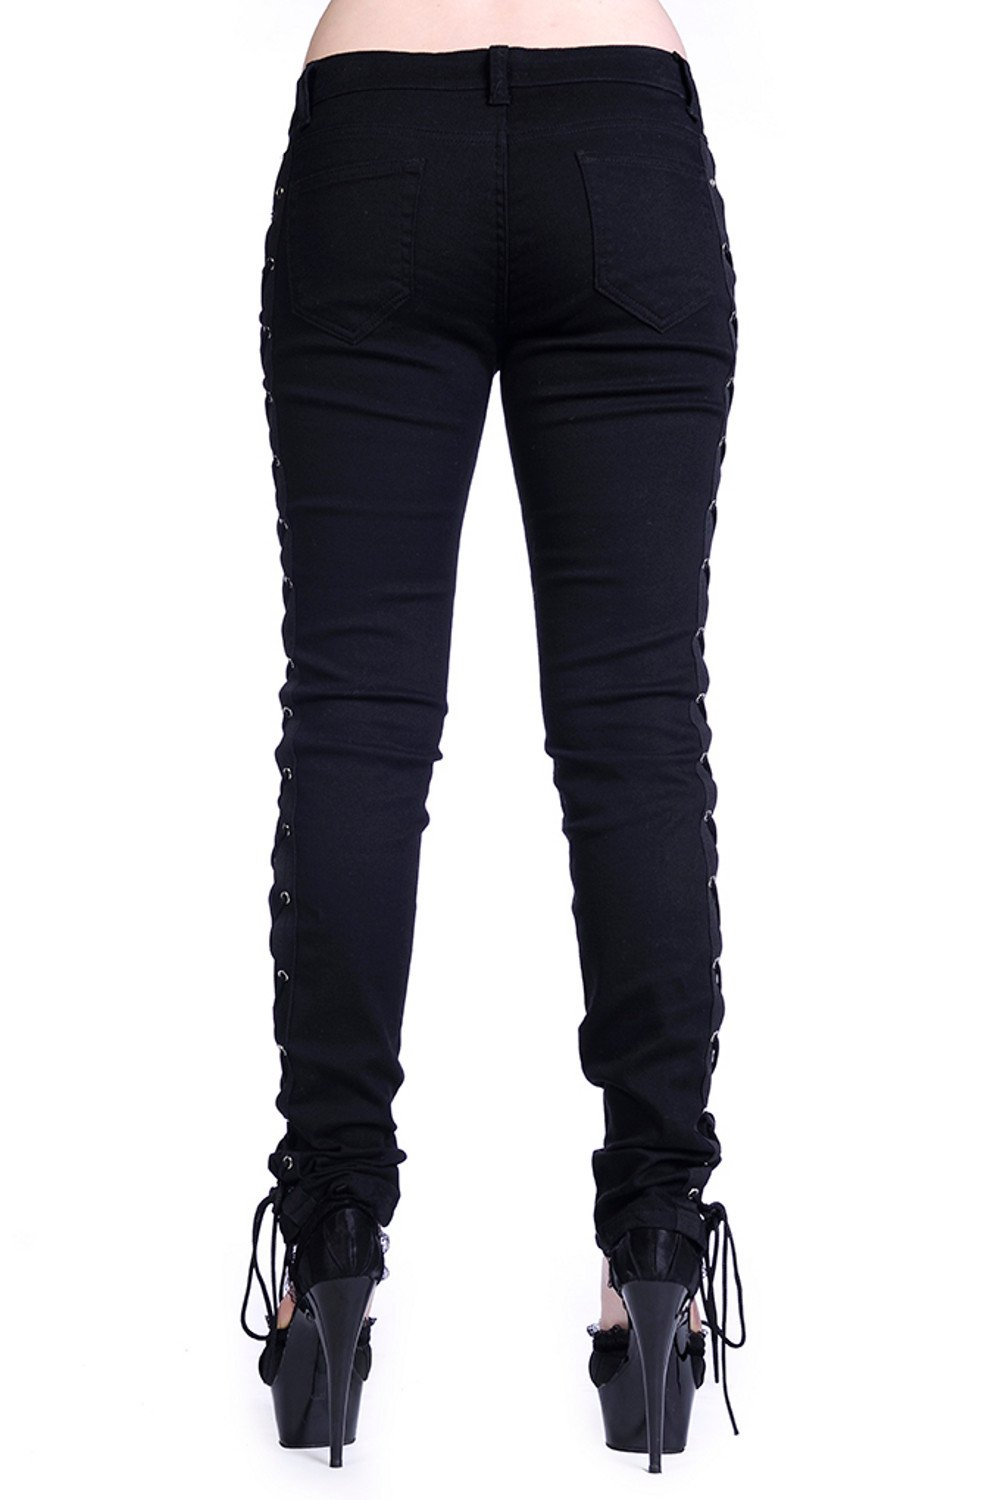 46ed38668f Gothic Rockabilly Steampunk Cyber Black Side Corset Skinny Jeans Pants